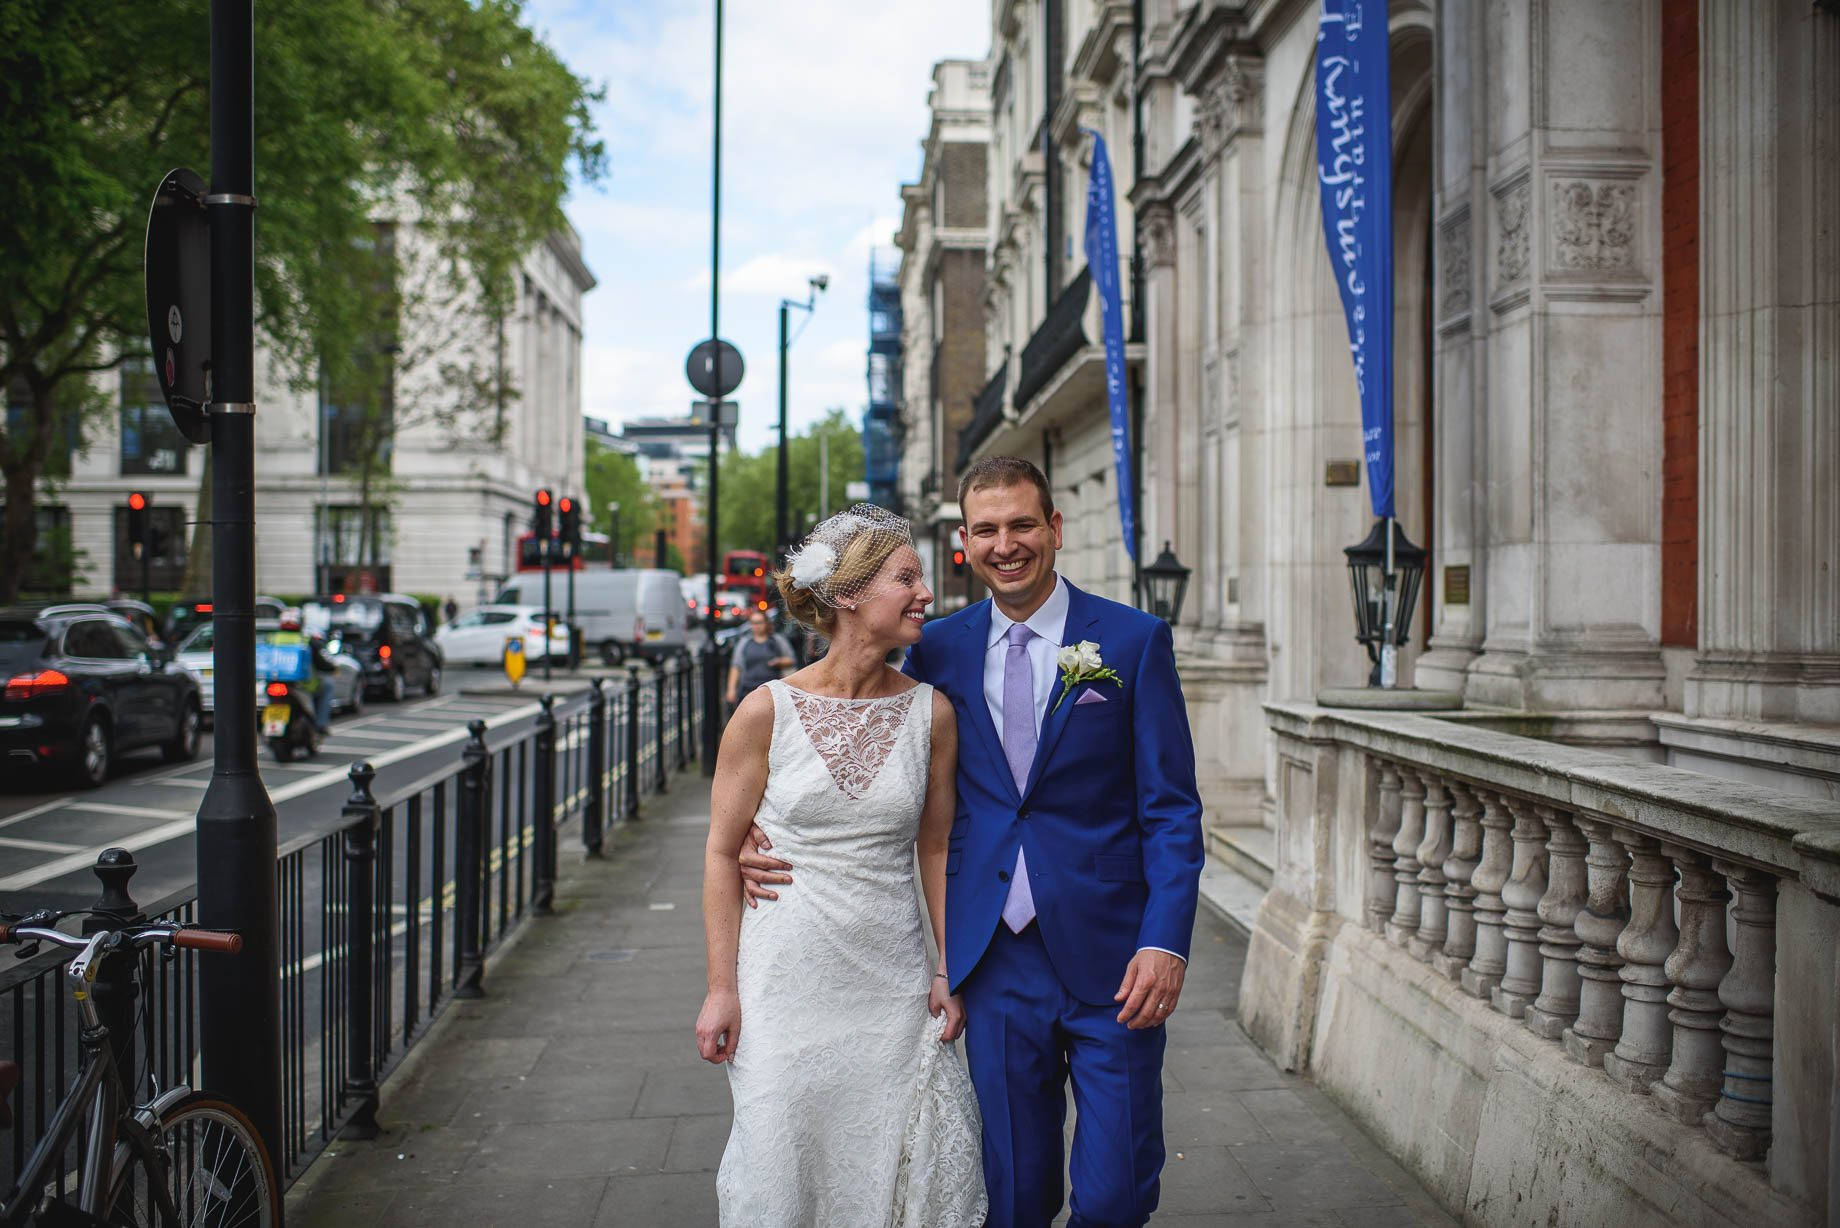 Bllomsbury House wedding photography in London - Katie and Taylor (72 of 156)